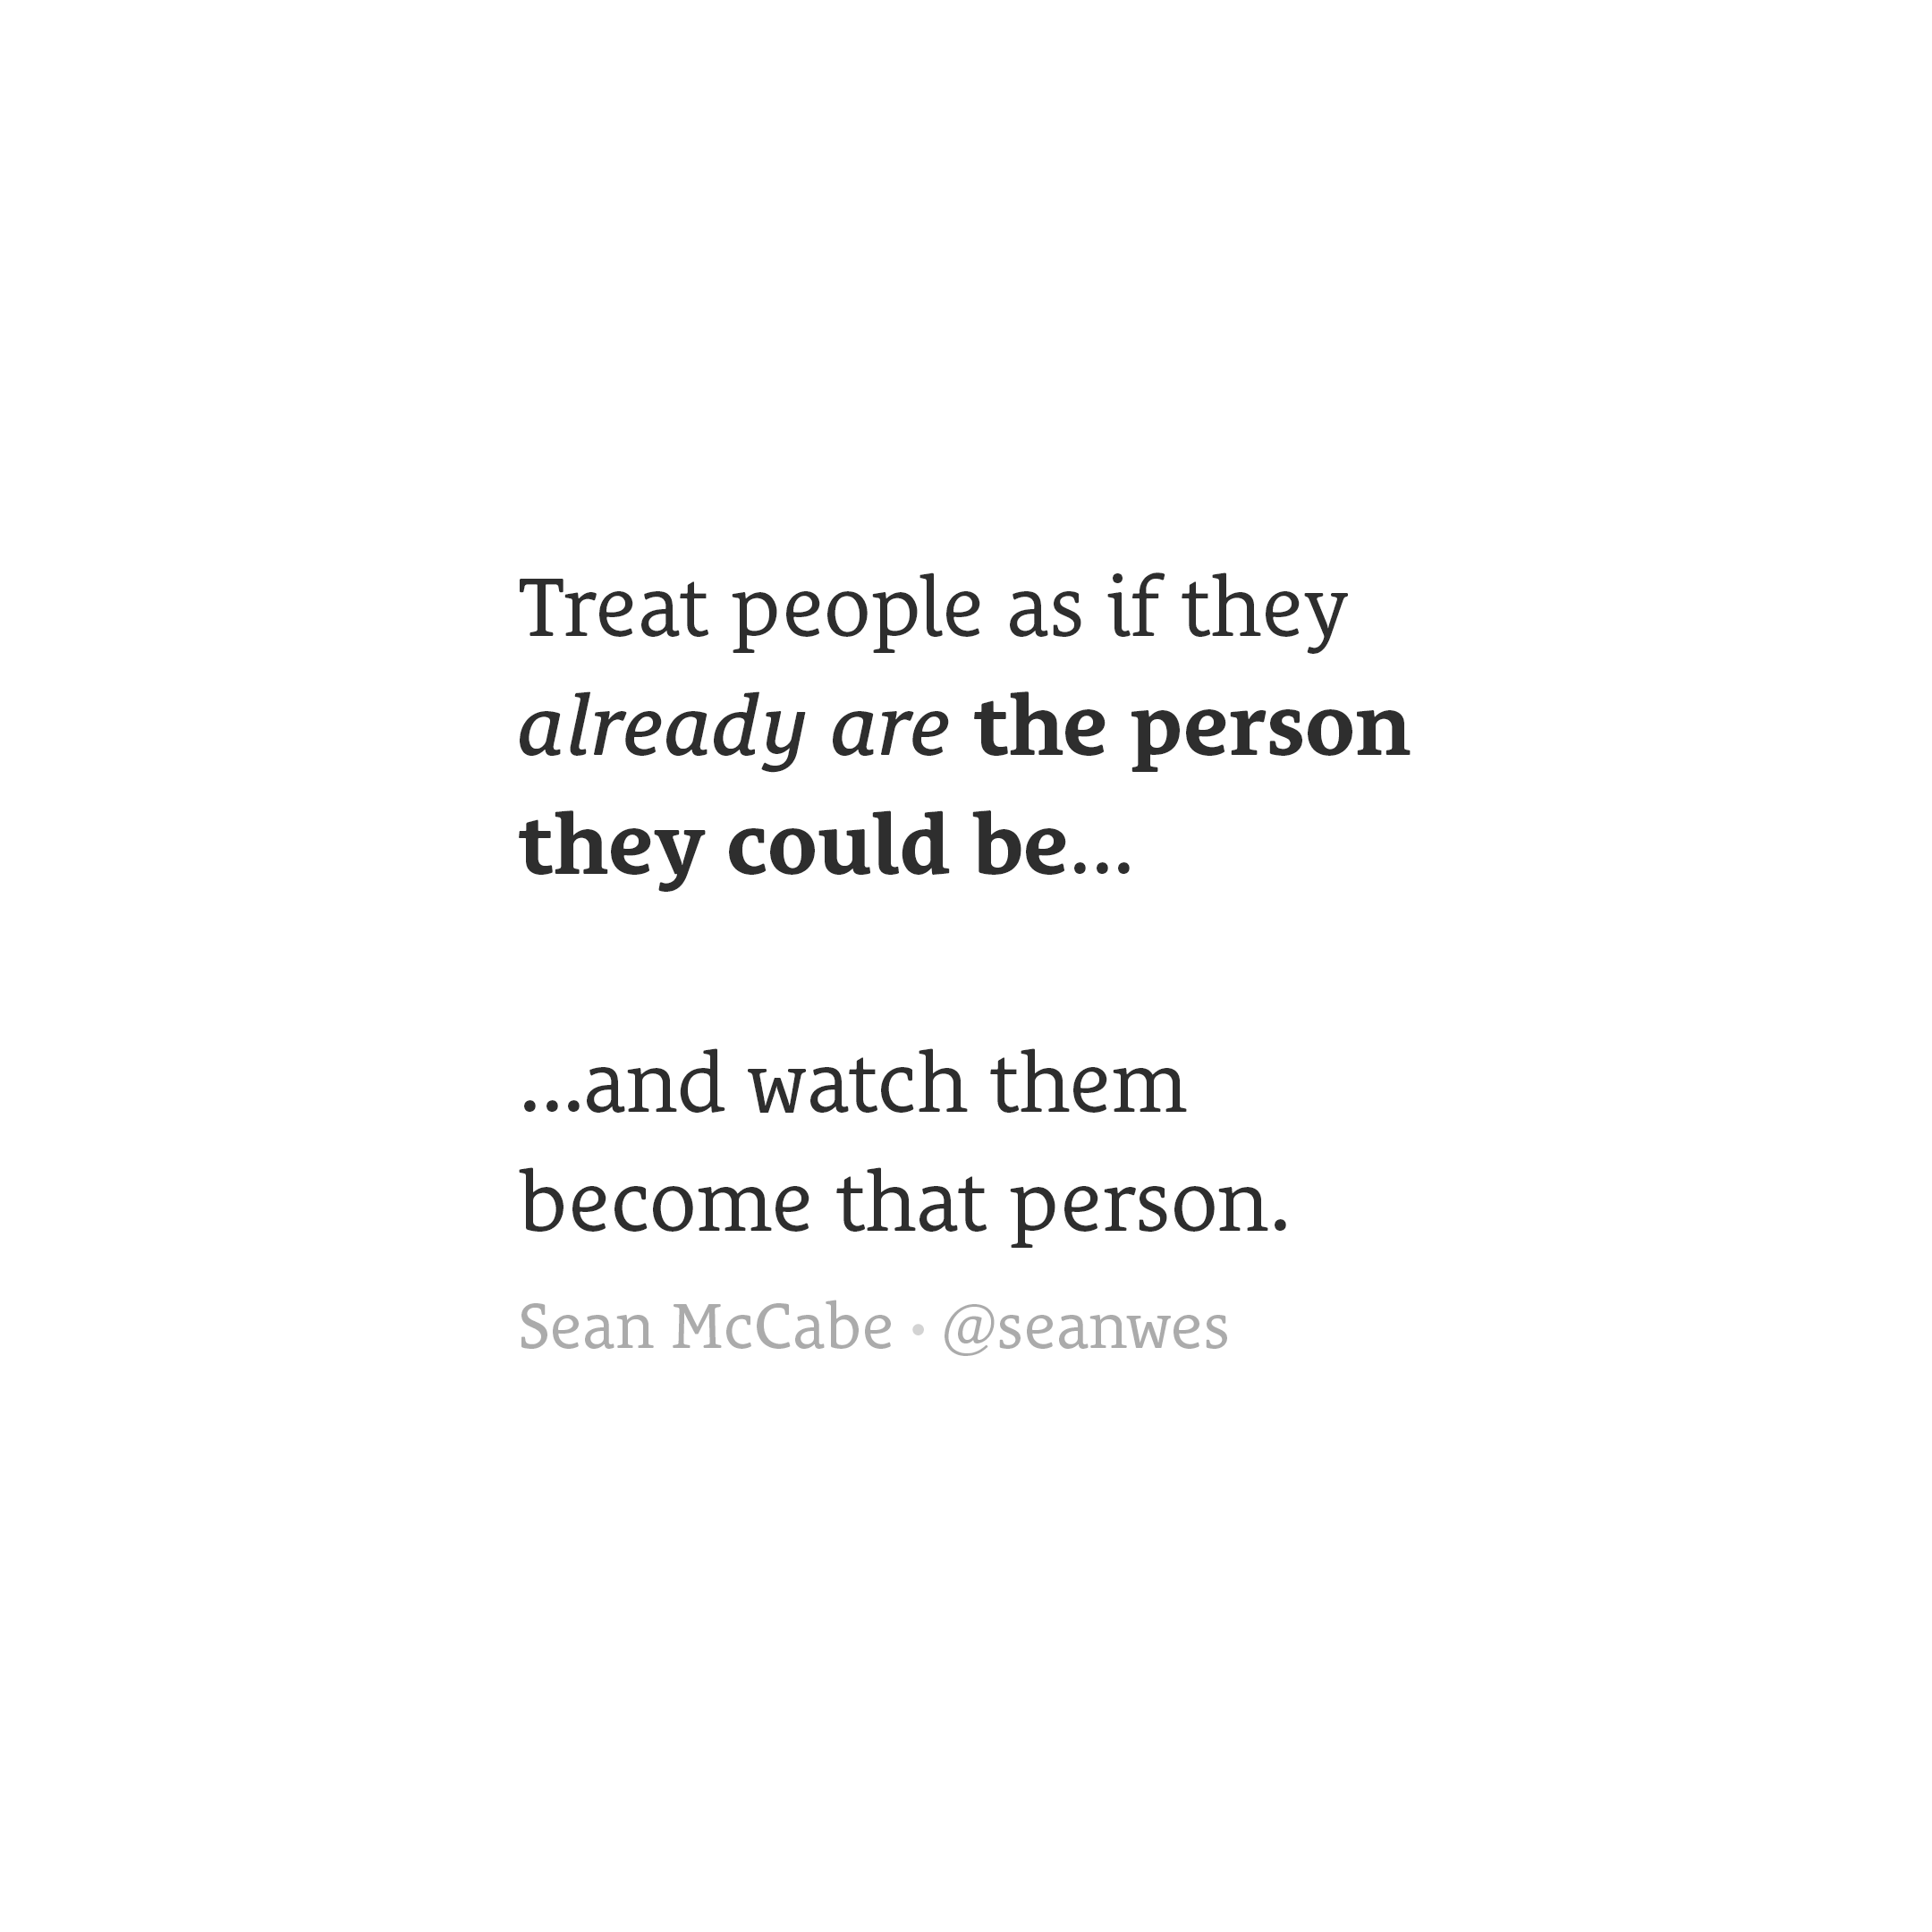 Treat people as if they are the person they could be and watch them become that person.